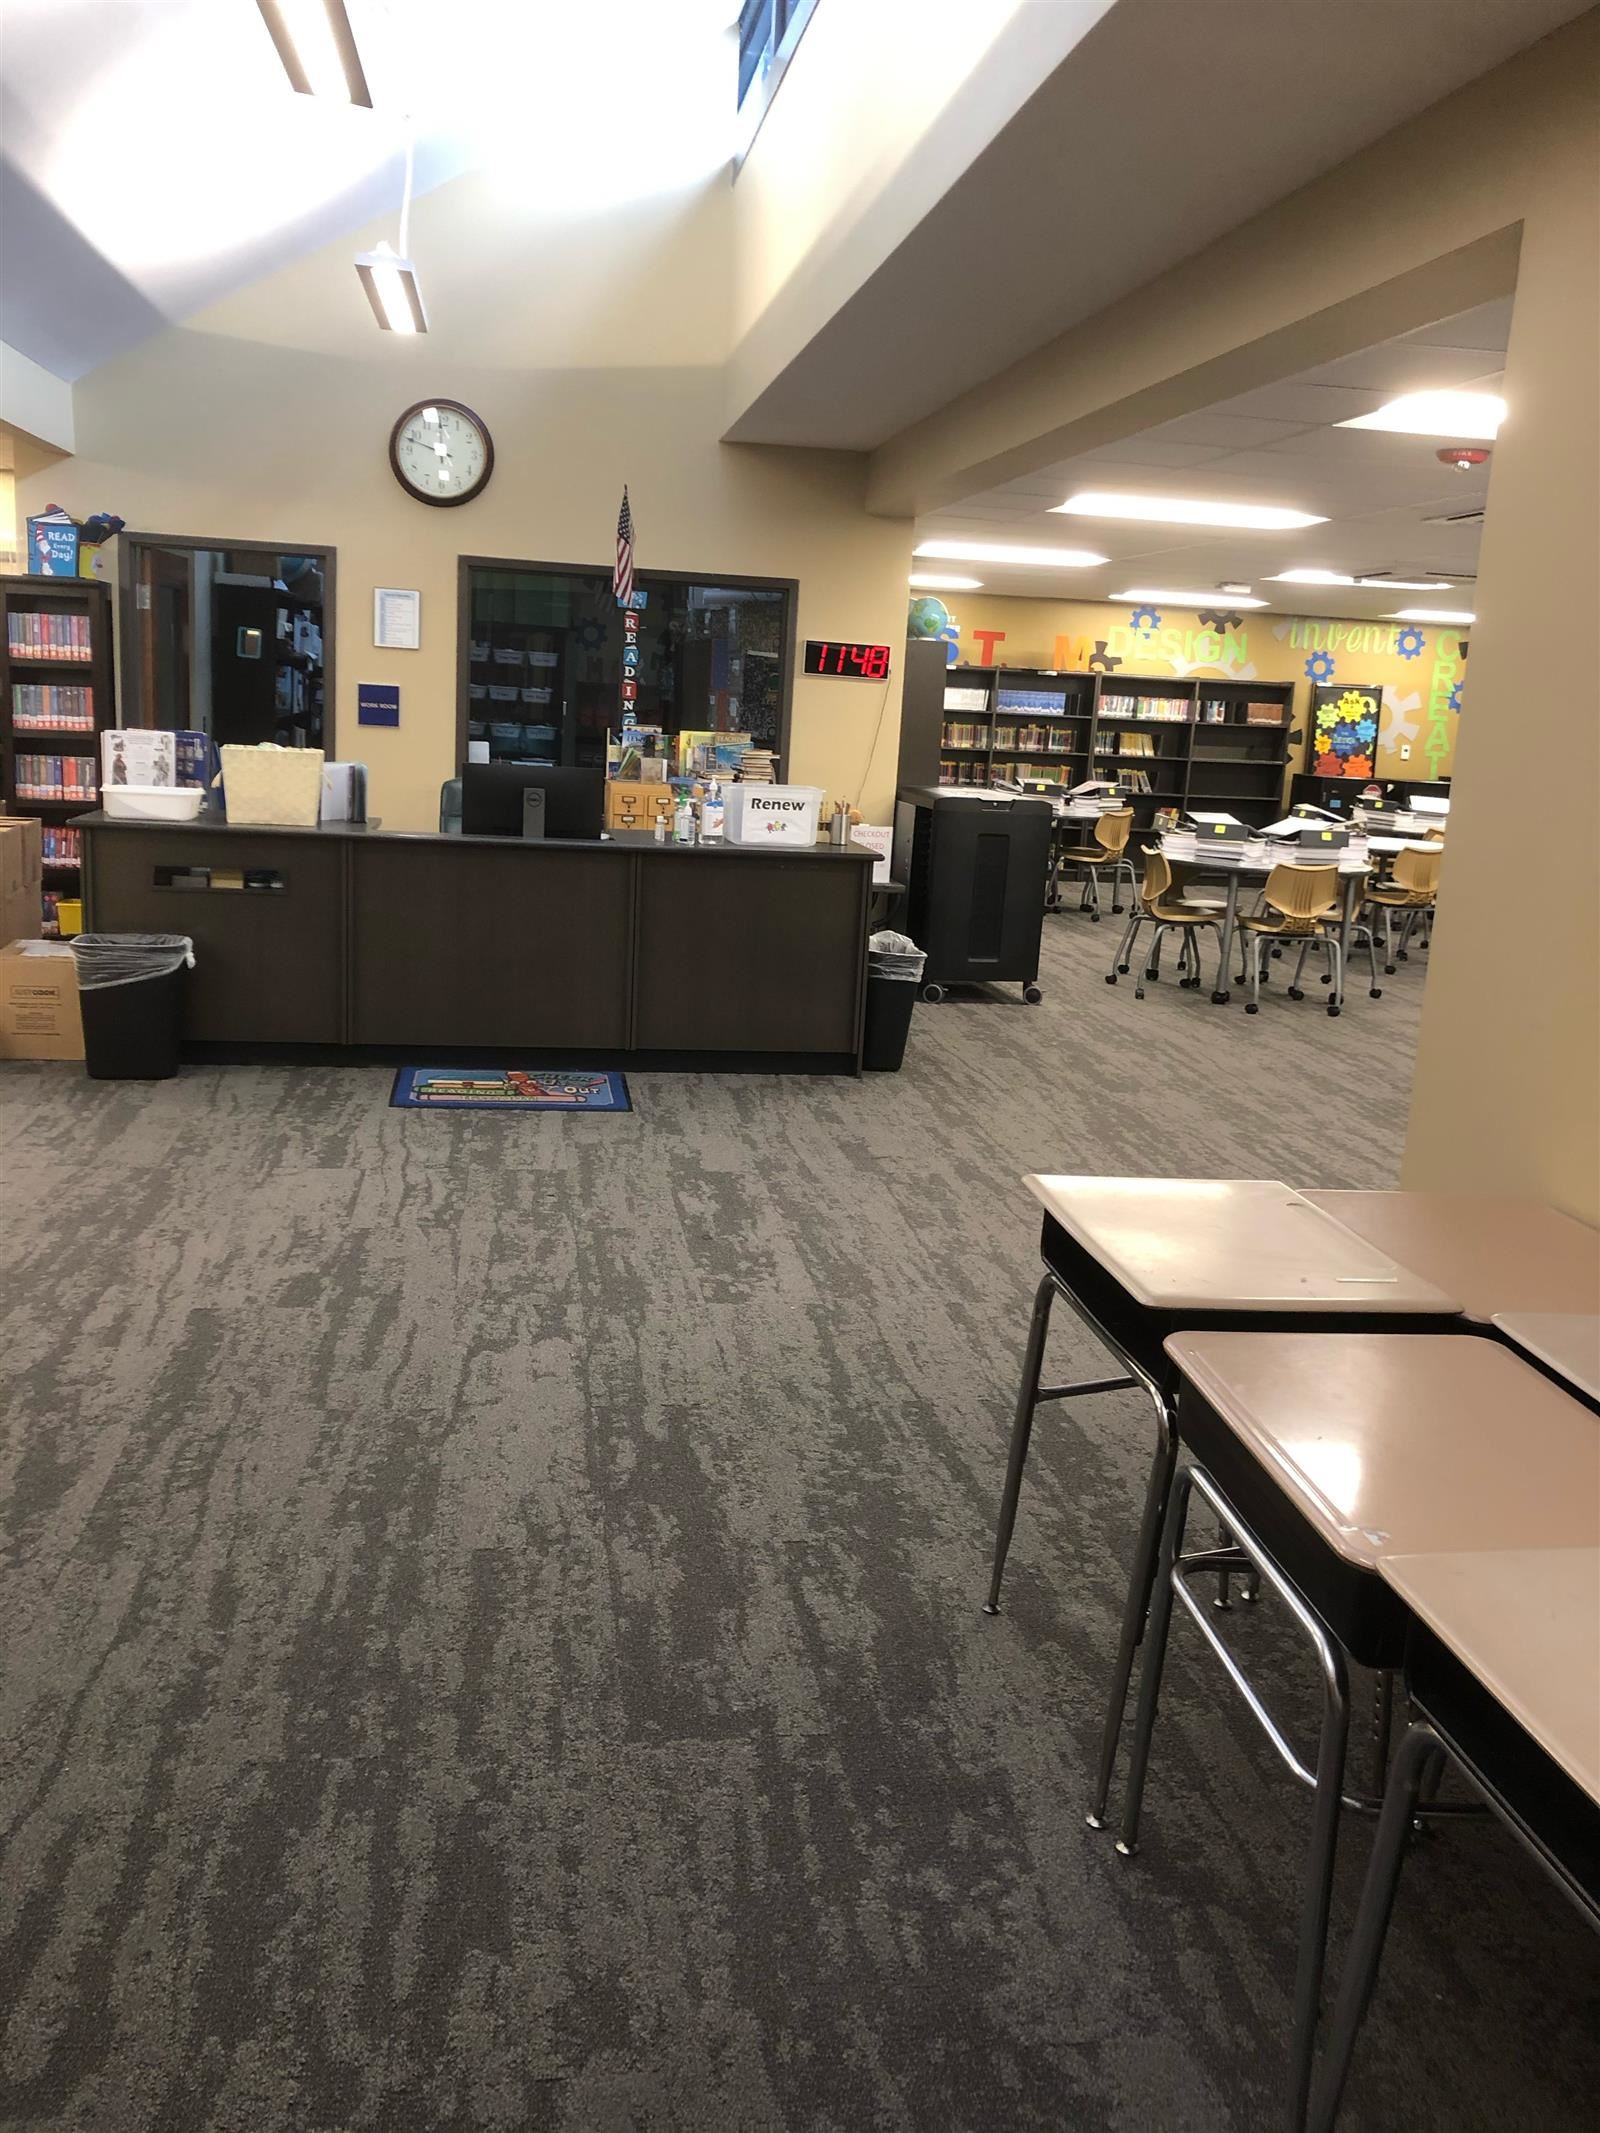 Scales Elementary learning common entrance with circulation desk and books